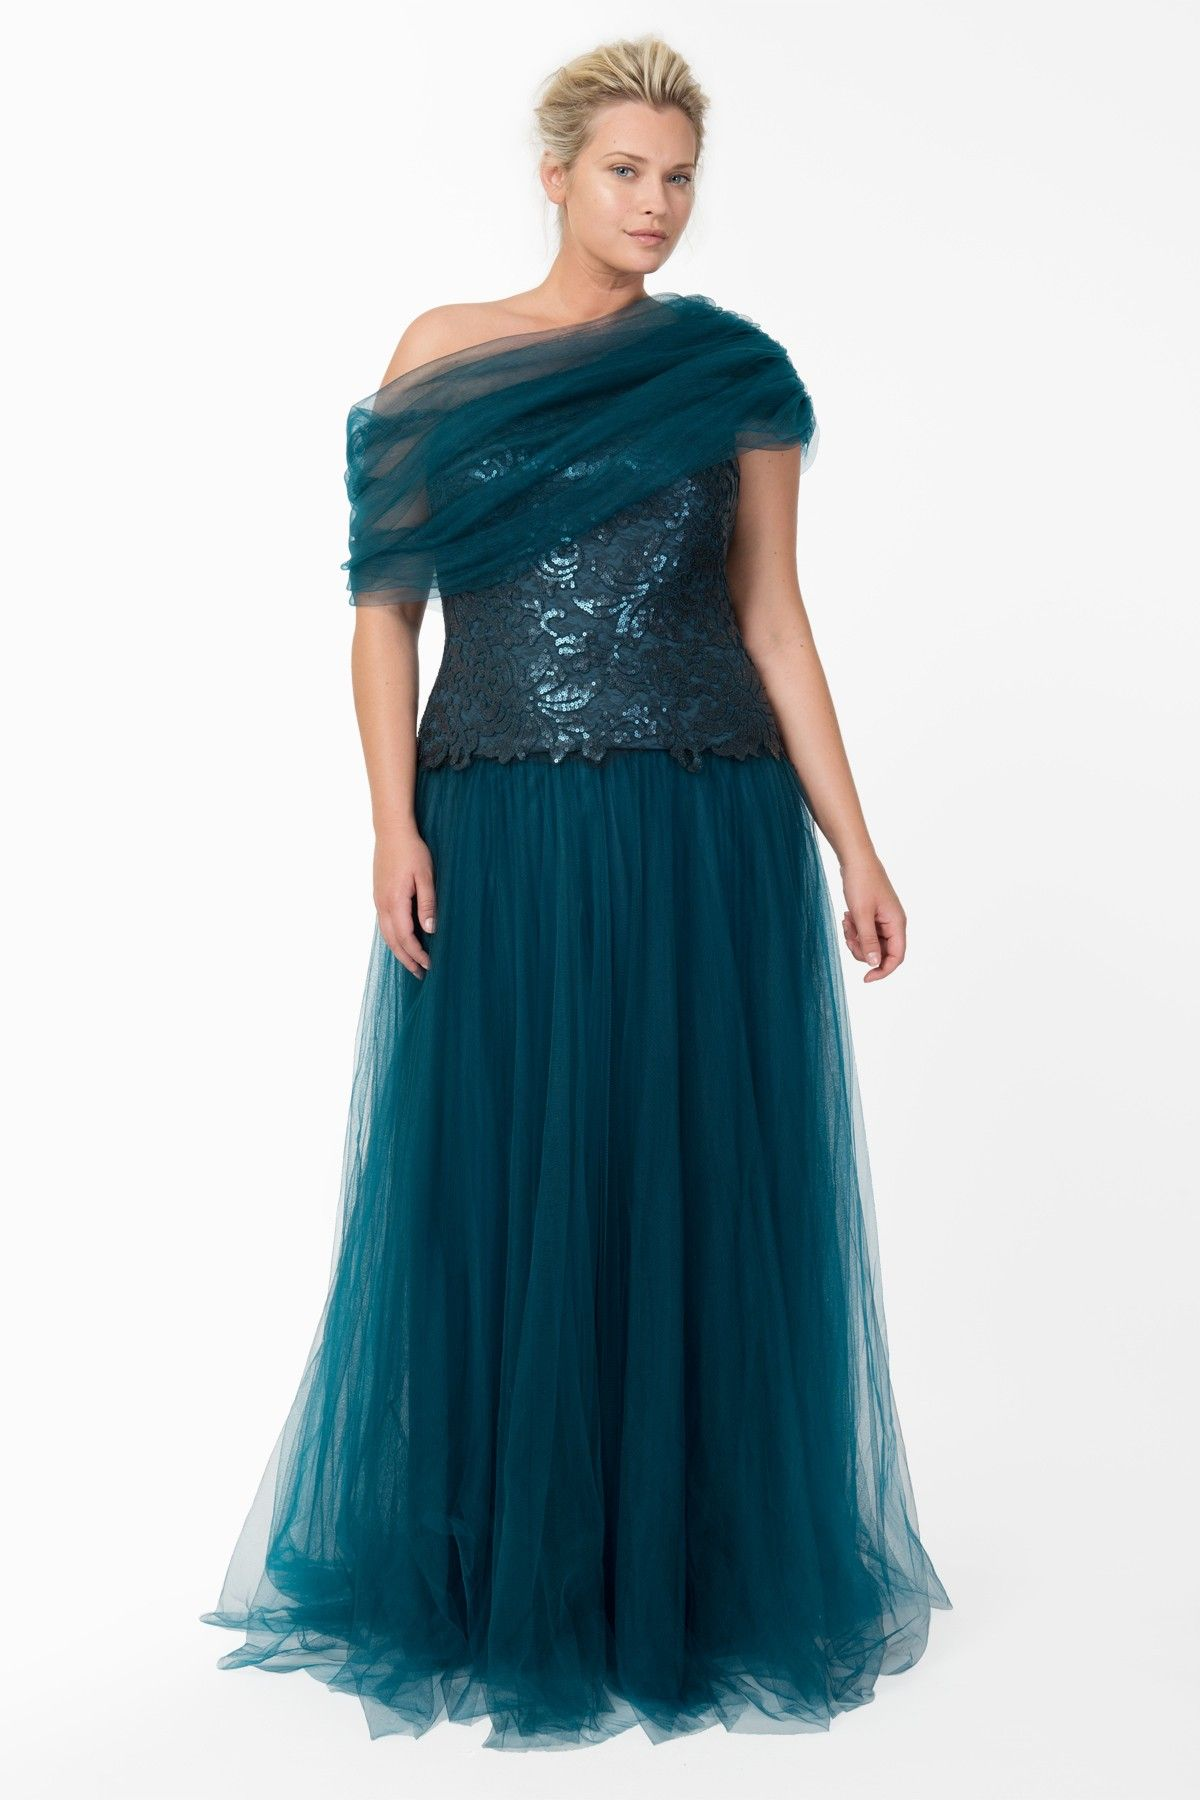 Sequin and Tulle Ball Gown in Starry Night - Plus Size Evening Shop ...